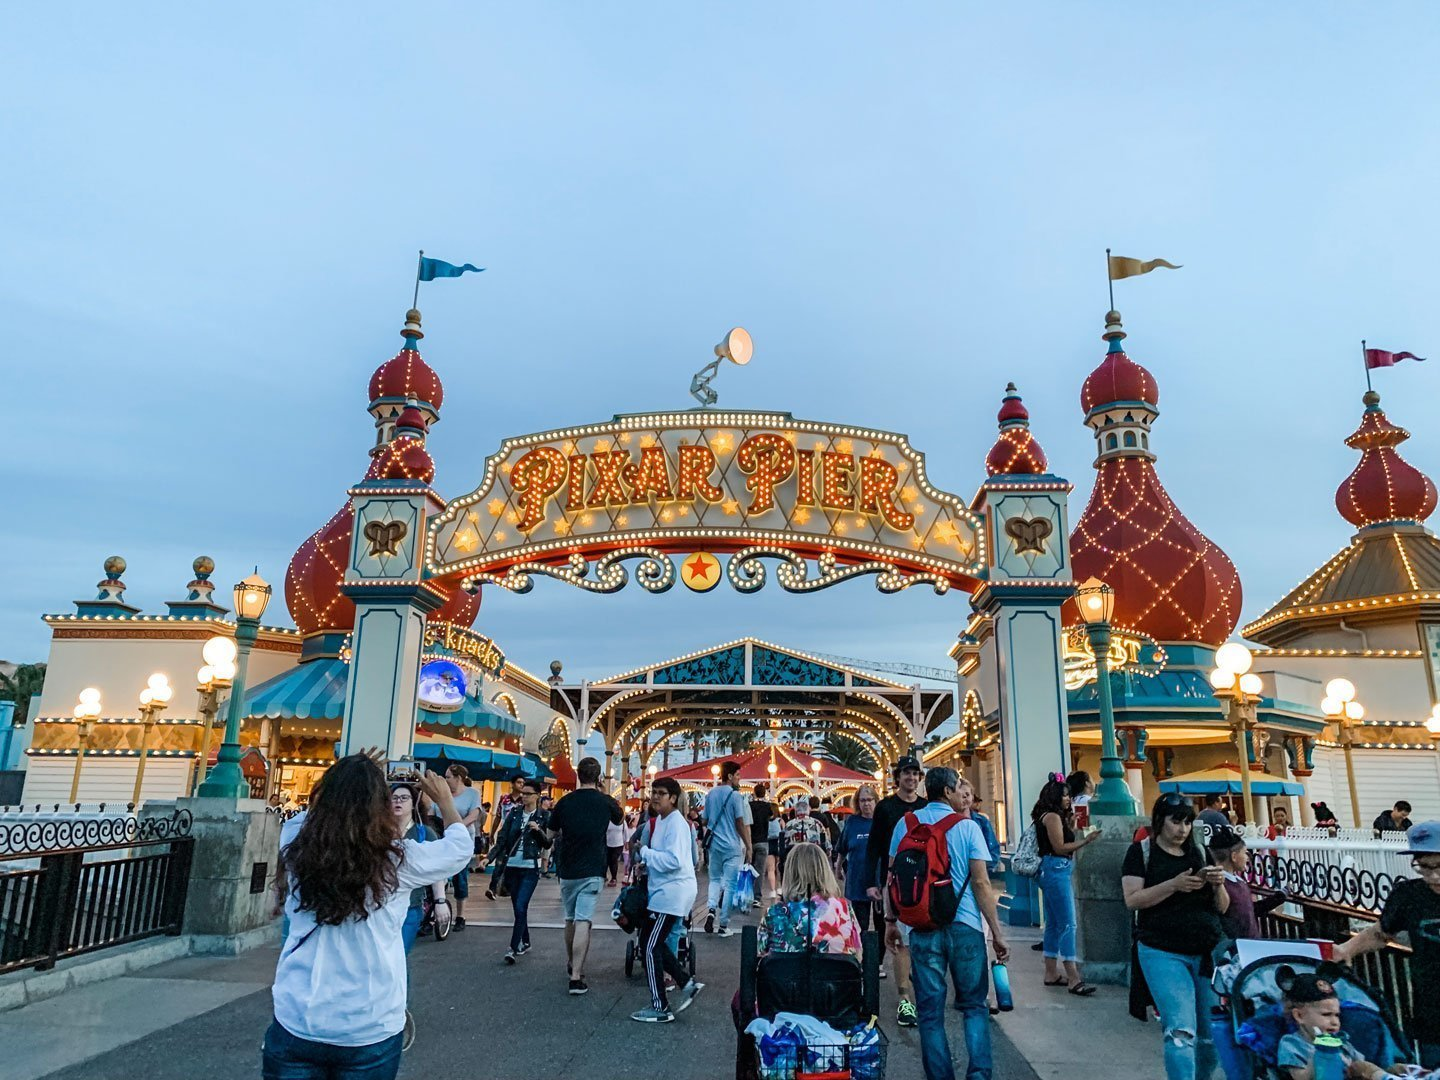 Disney California Adventure Pixar Pier at Night